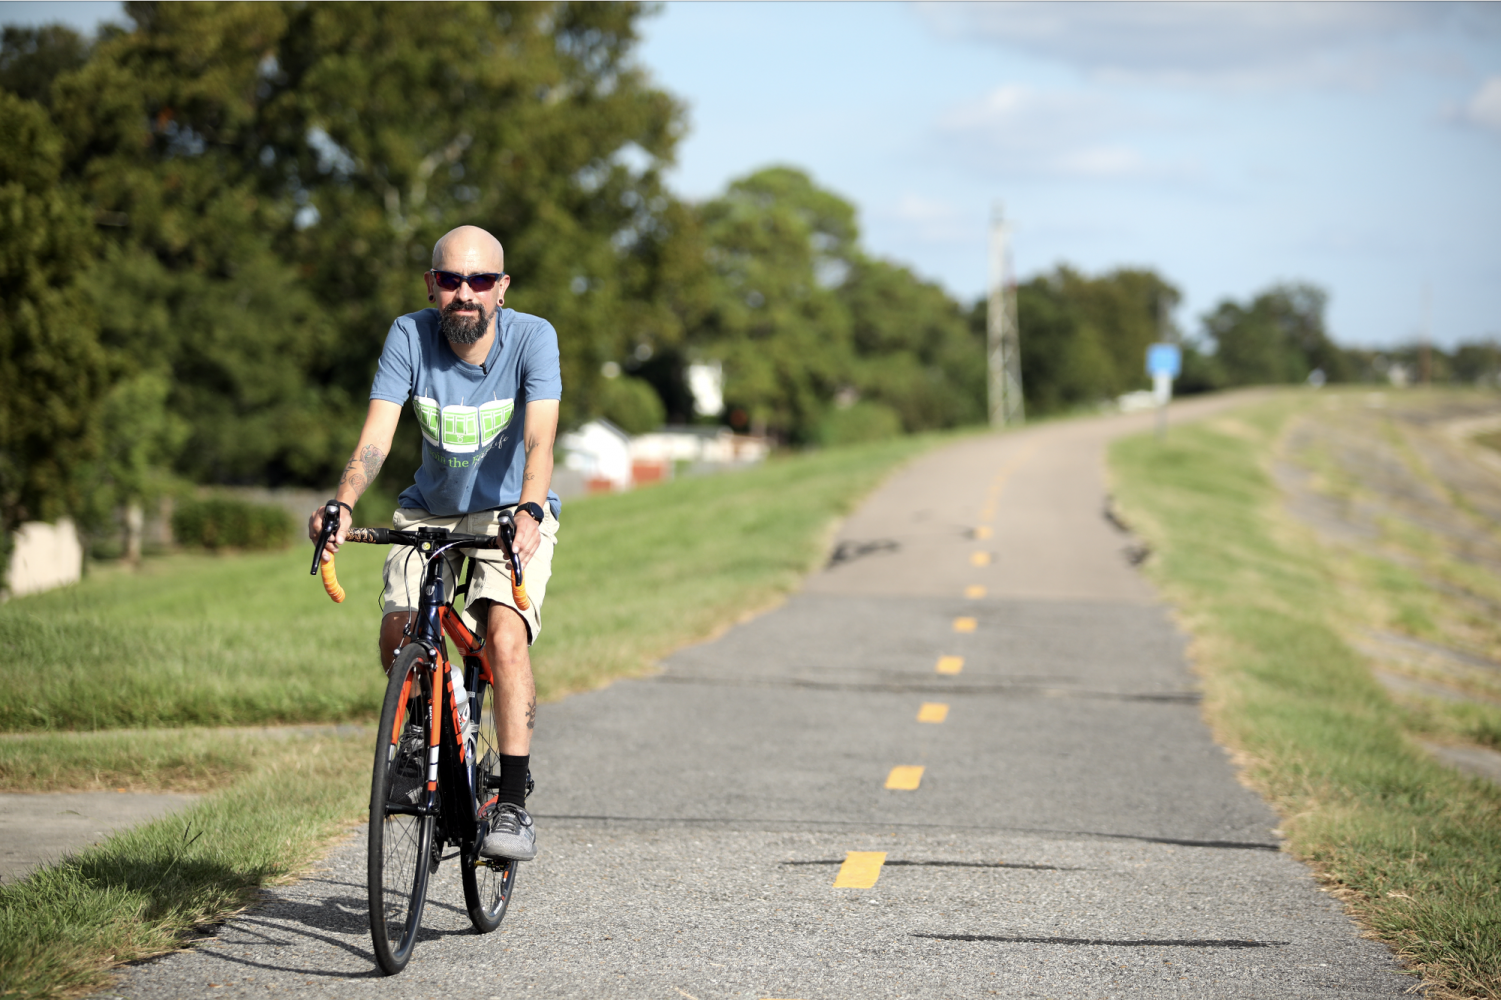 Frankie Avila rides his bike on the levee in Rivertown, Kenner. Photo Credit: Andres Fuentes